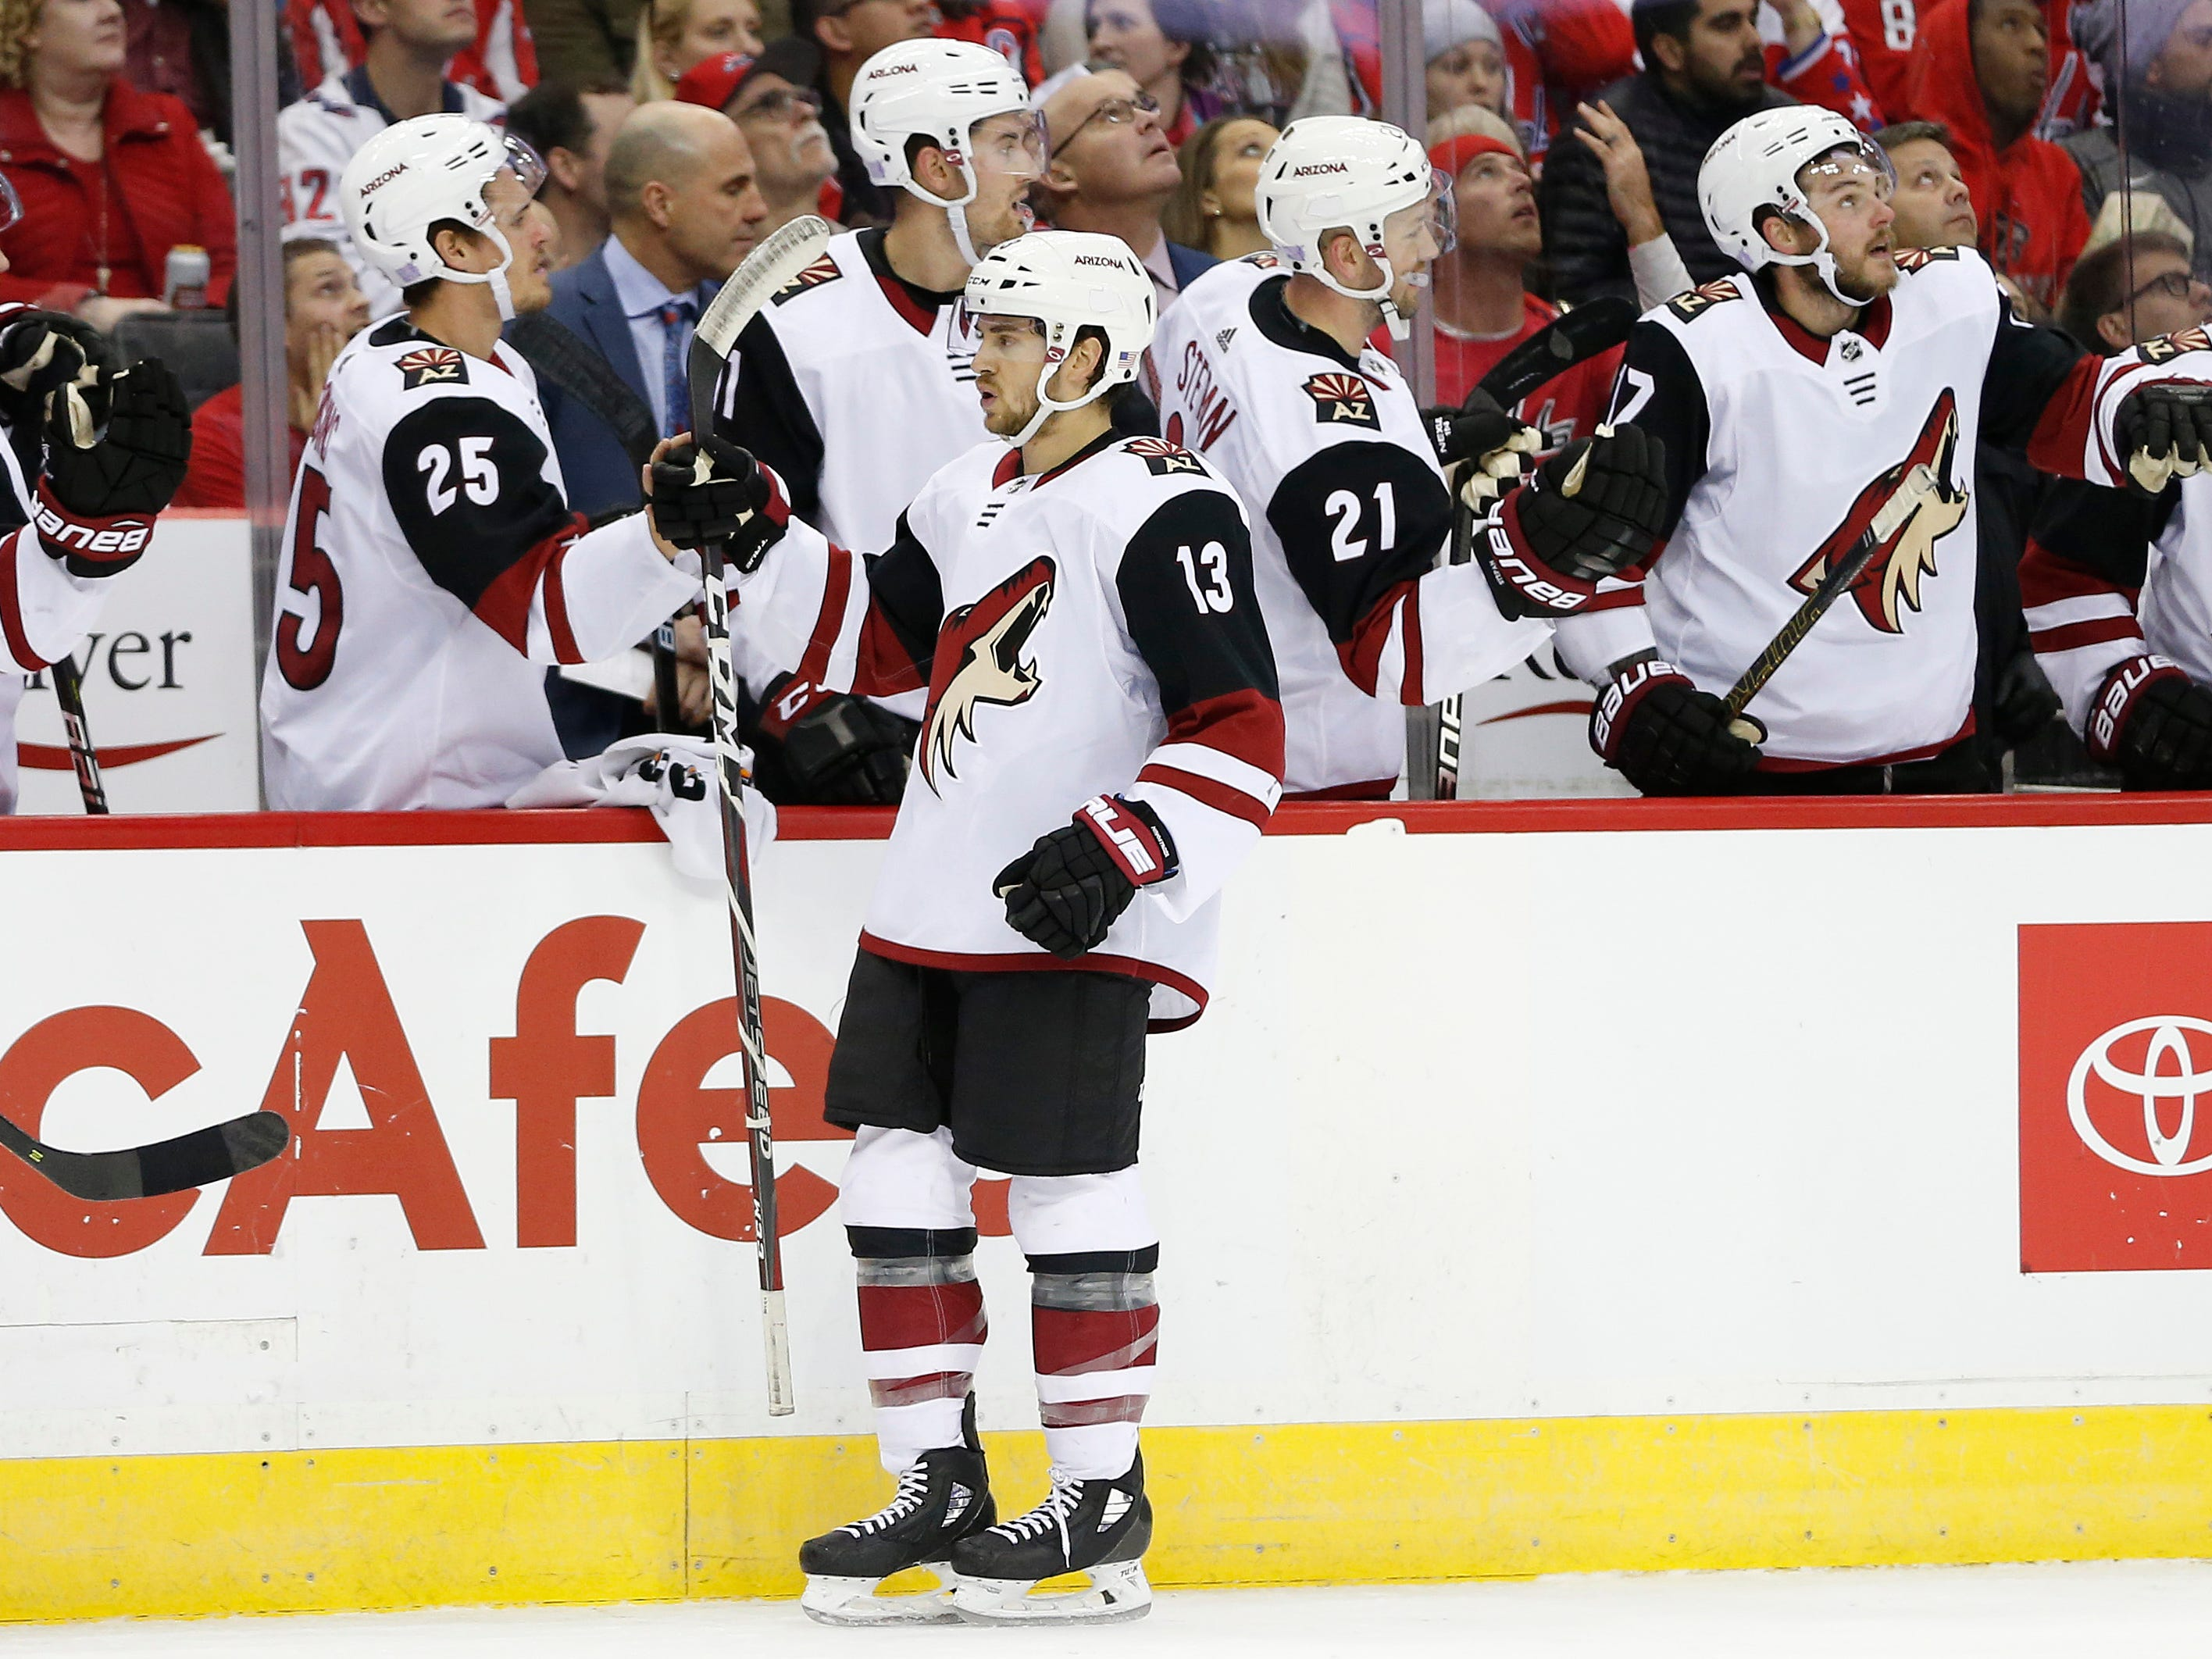 Nov 11, 2018; Washington, DC, USA; Arizona Coyotes center Vinnie Hinostroza (13) celebrates with teammates after scoring a goal during the first period against the Washington Capitals at Capital One Arena. Mandatory Credit: Amber Searls-USA TODAY Sports